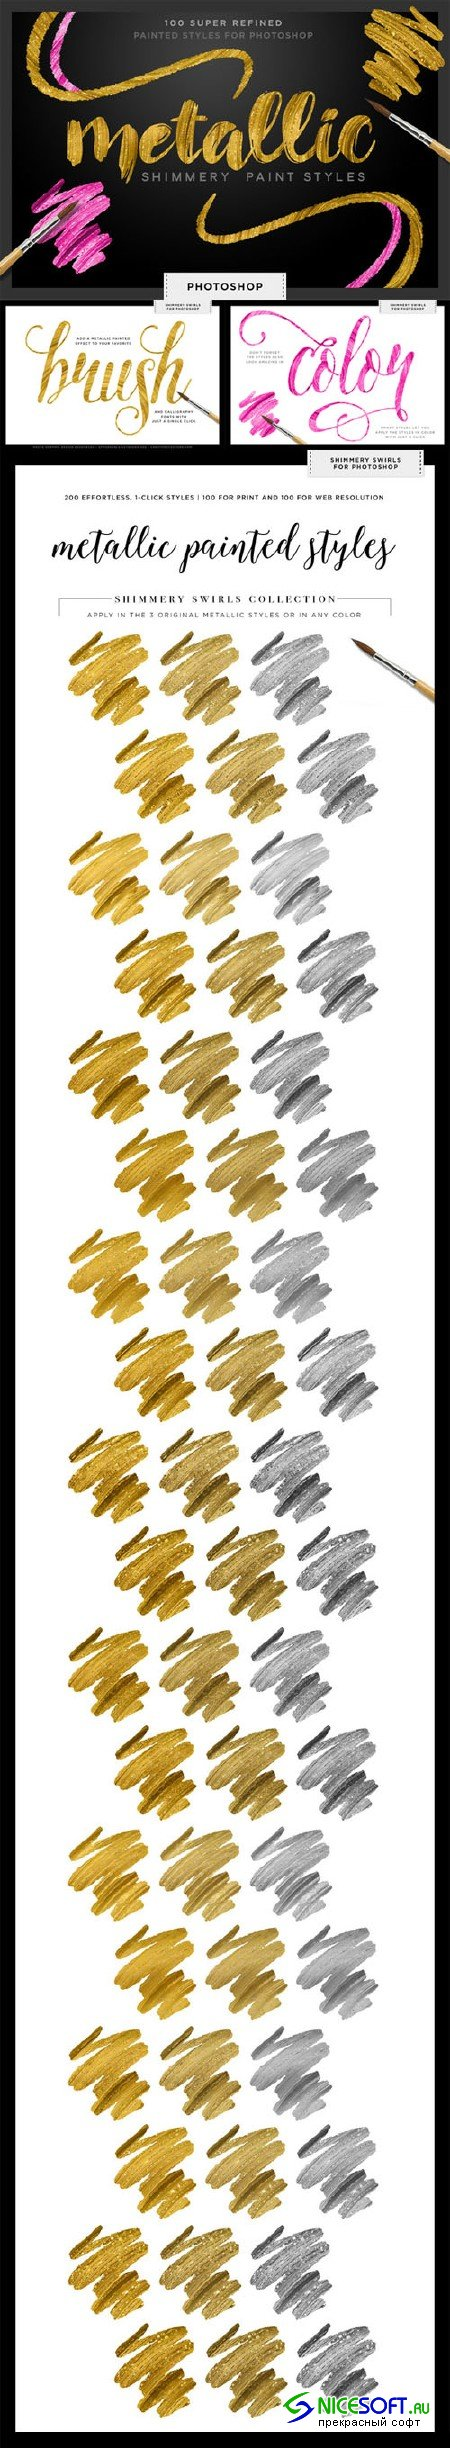 Shimmery Metallic Gold Paint Kit: PS - Creativemarket 239474